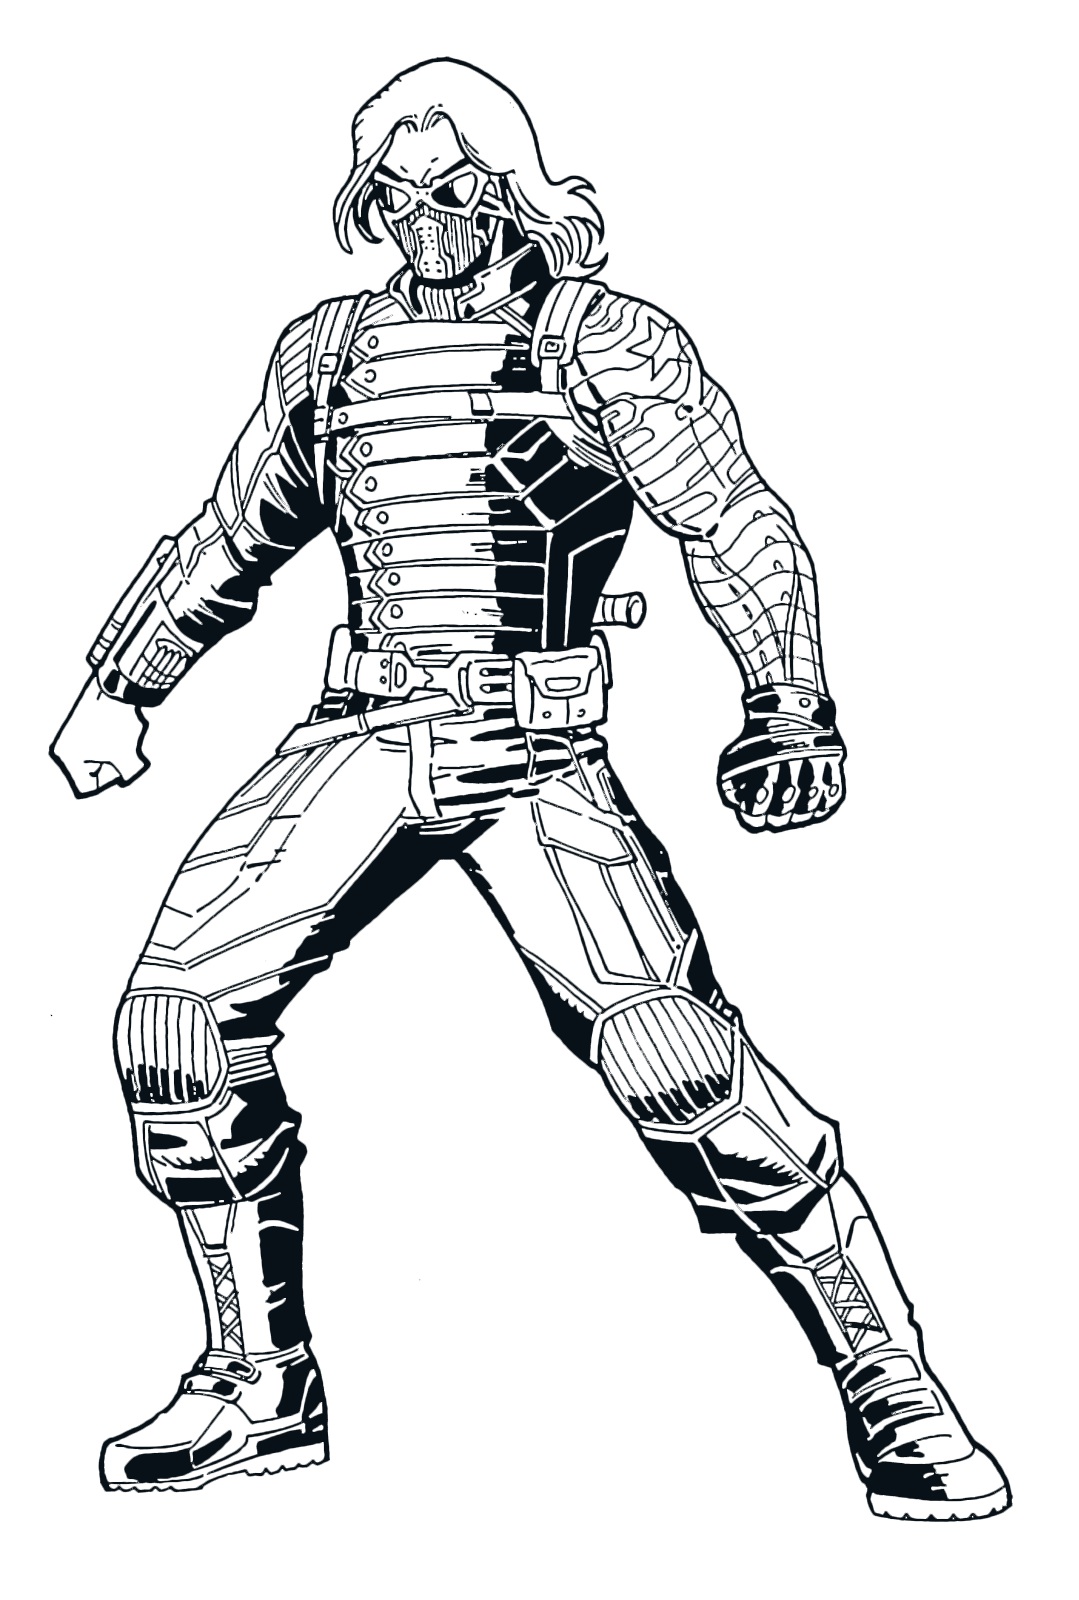 Avengers Coloring Pages Movies And Tv Coloring Pages